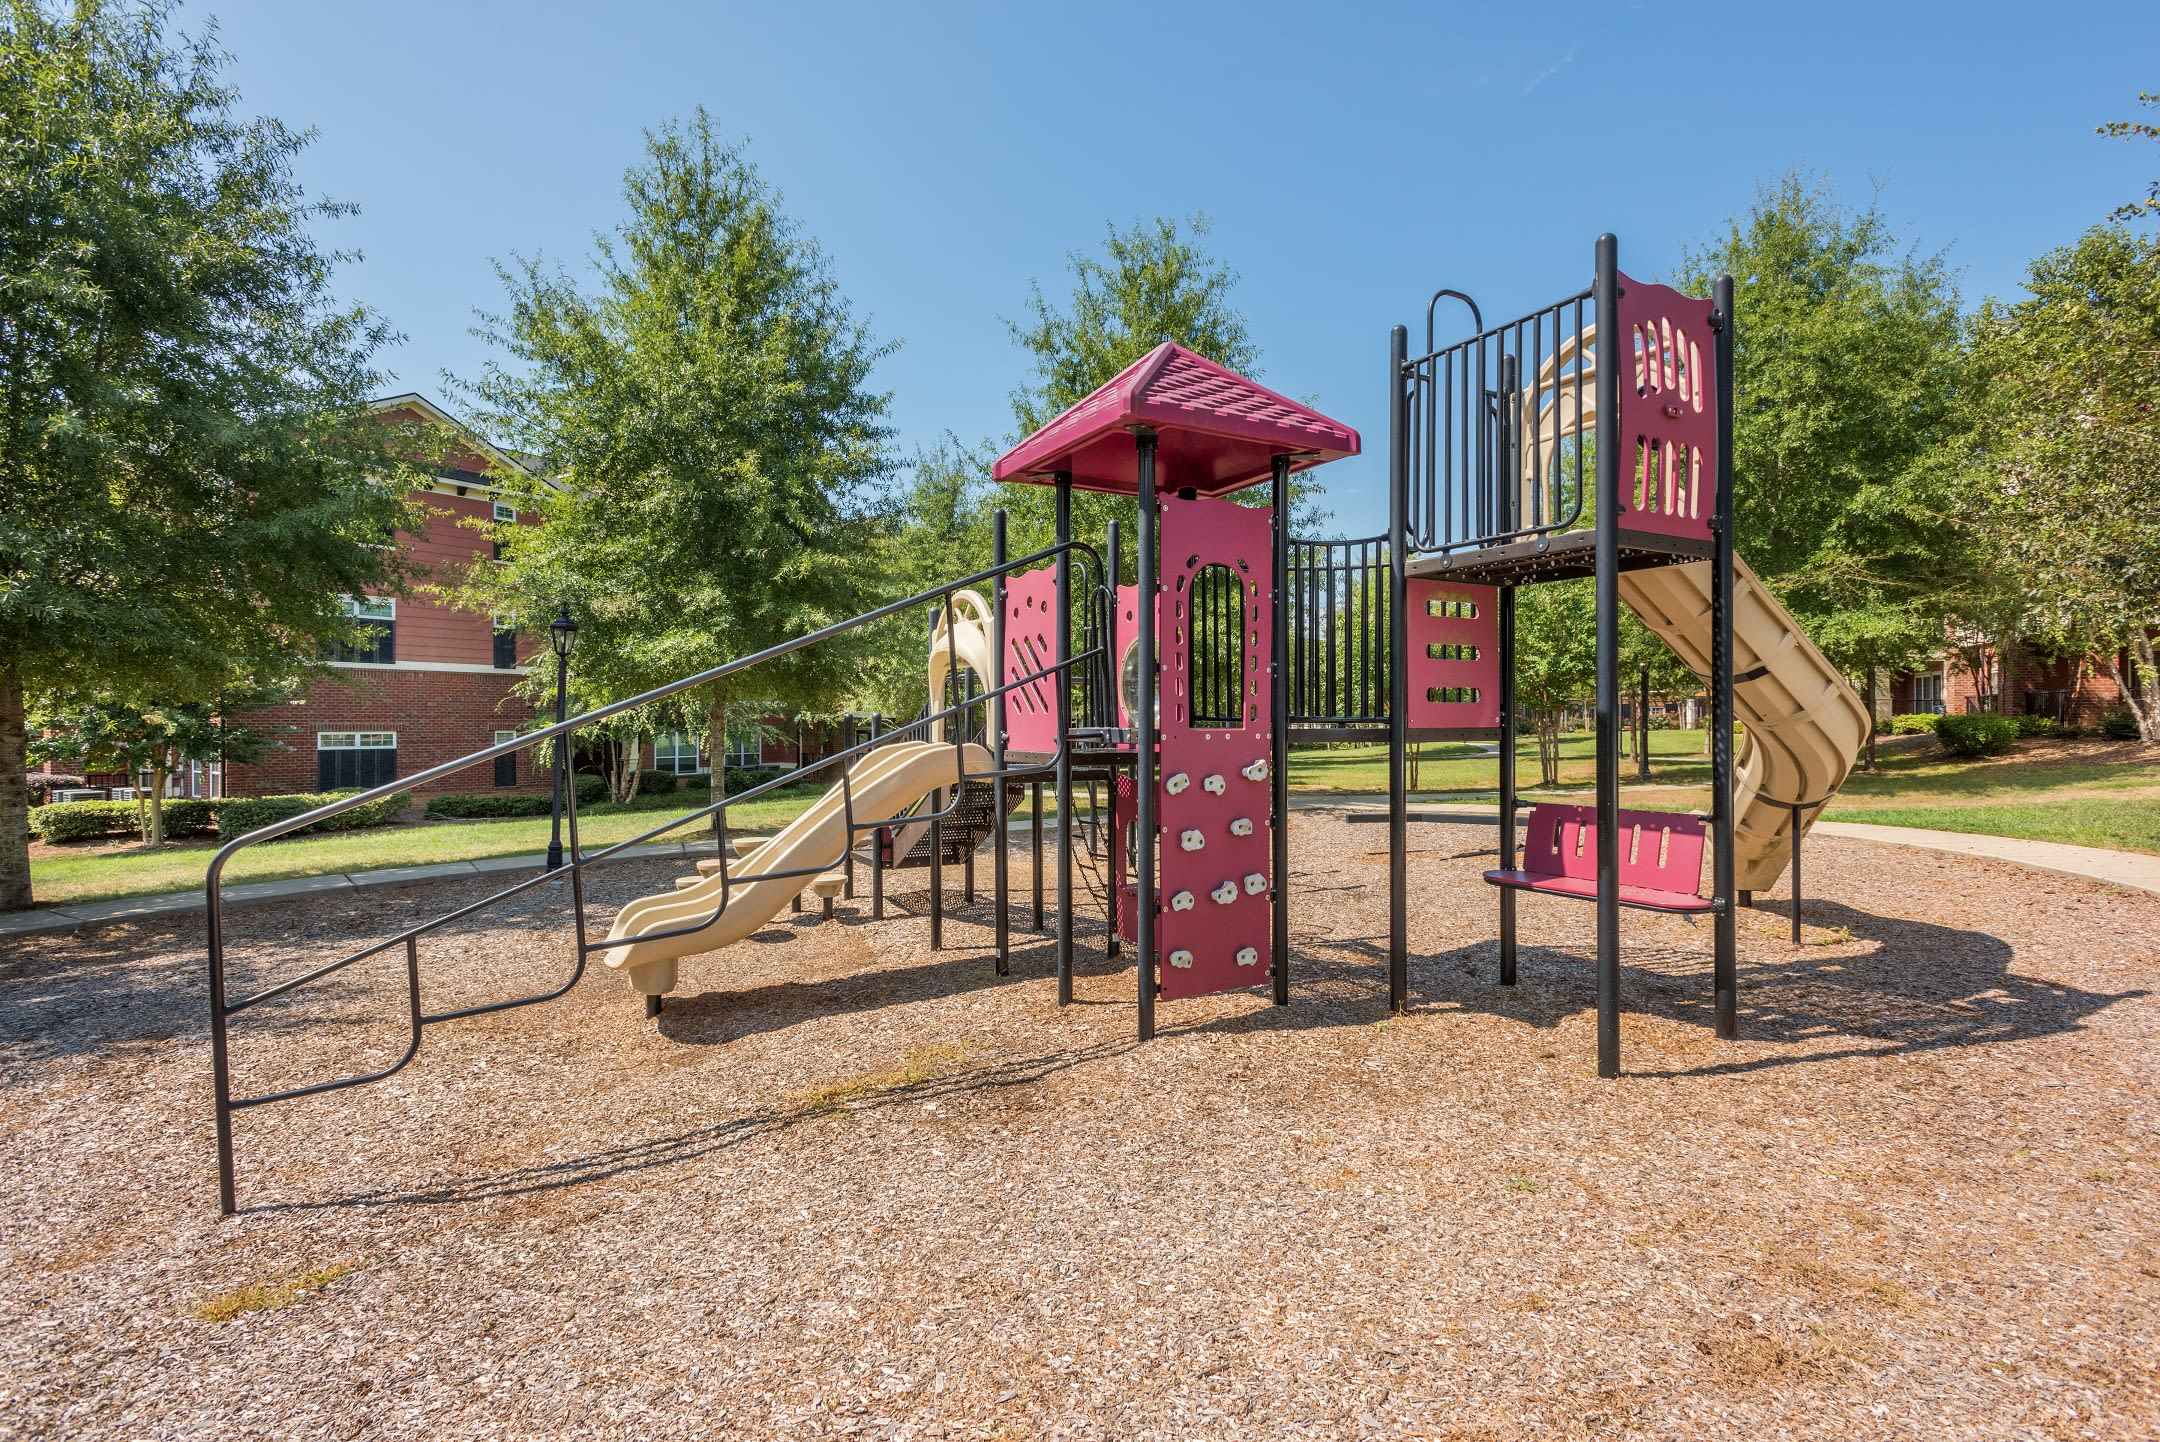 Playground at The Vive in Kannapolis, North Carolina